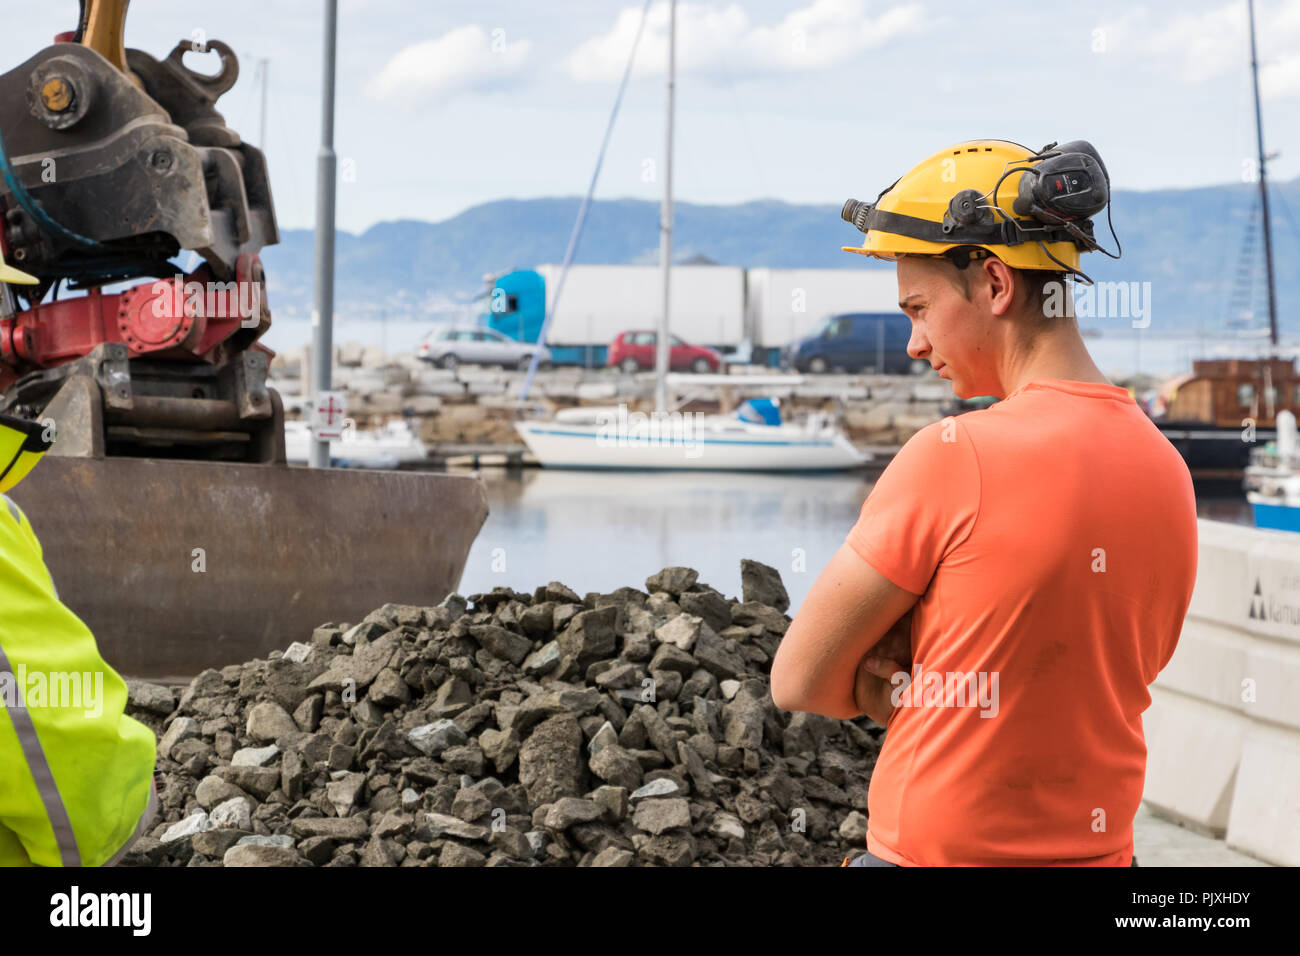 Trondheim, Norway - August 28th, 2018: A young construction worker standing at Brattorkaia St wearing a helmet and a radio hearing protection headset, - Stock Image